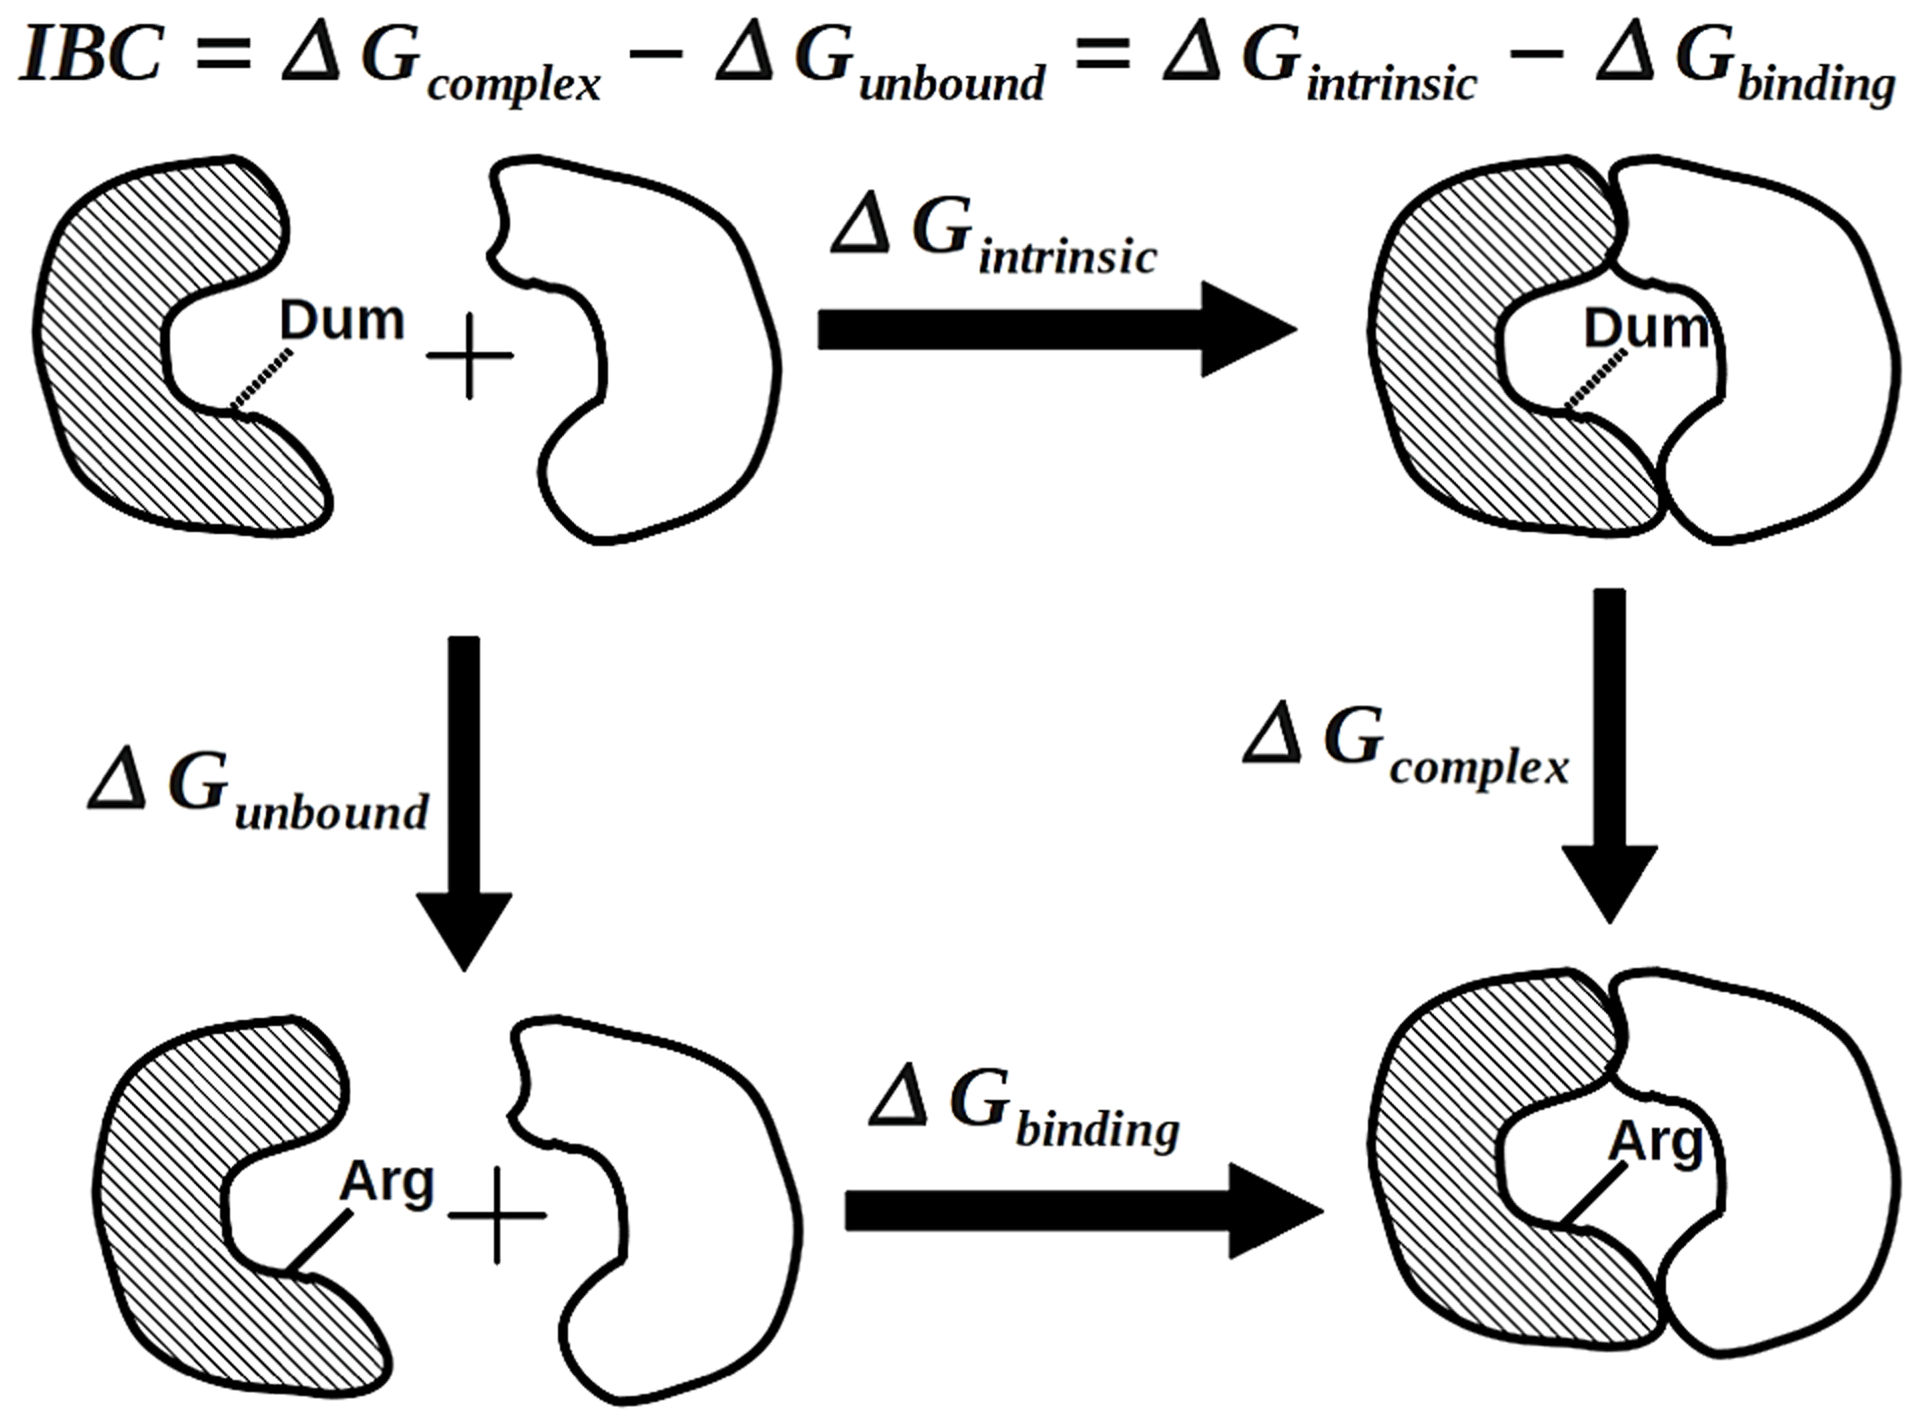 The thermodynamic cycle for the calculation of the intrinsic binding contribution of a protein-protein interfacial residue.